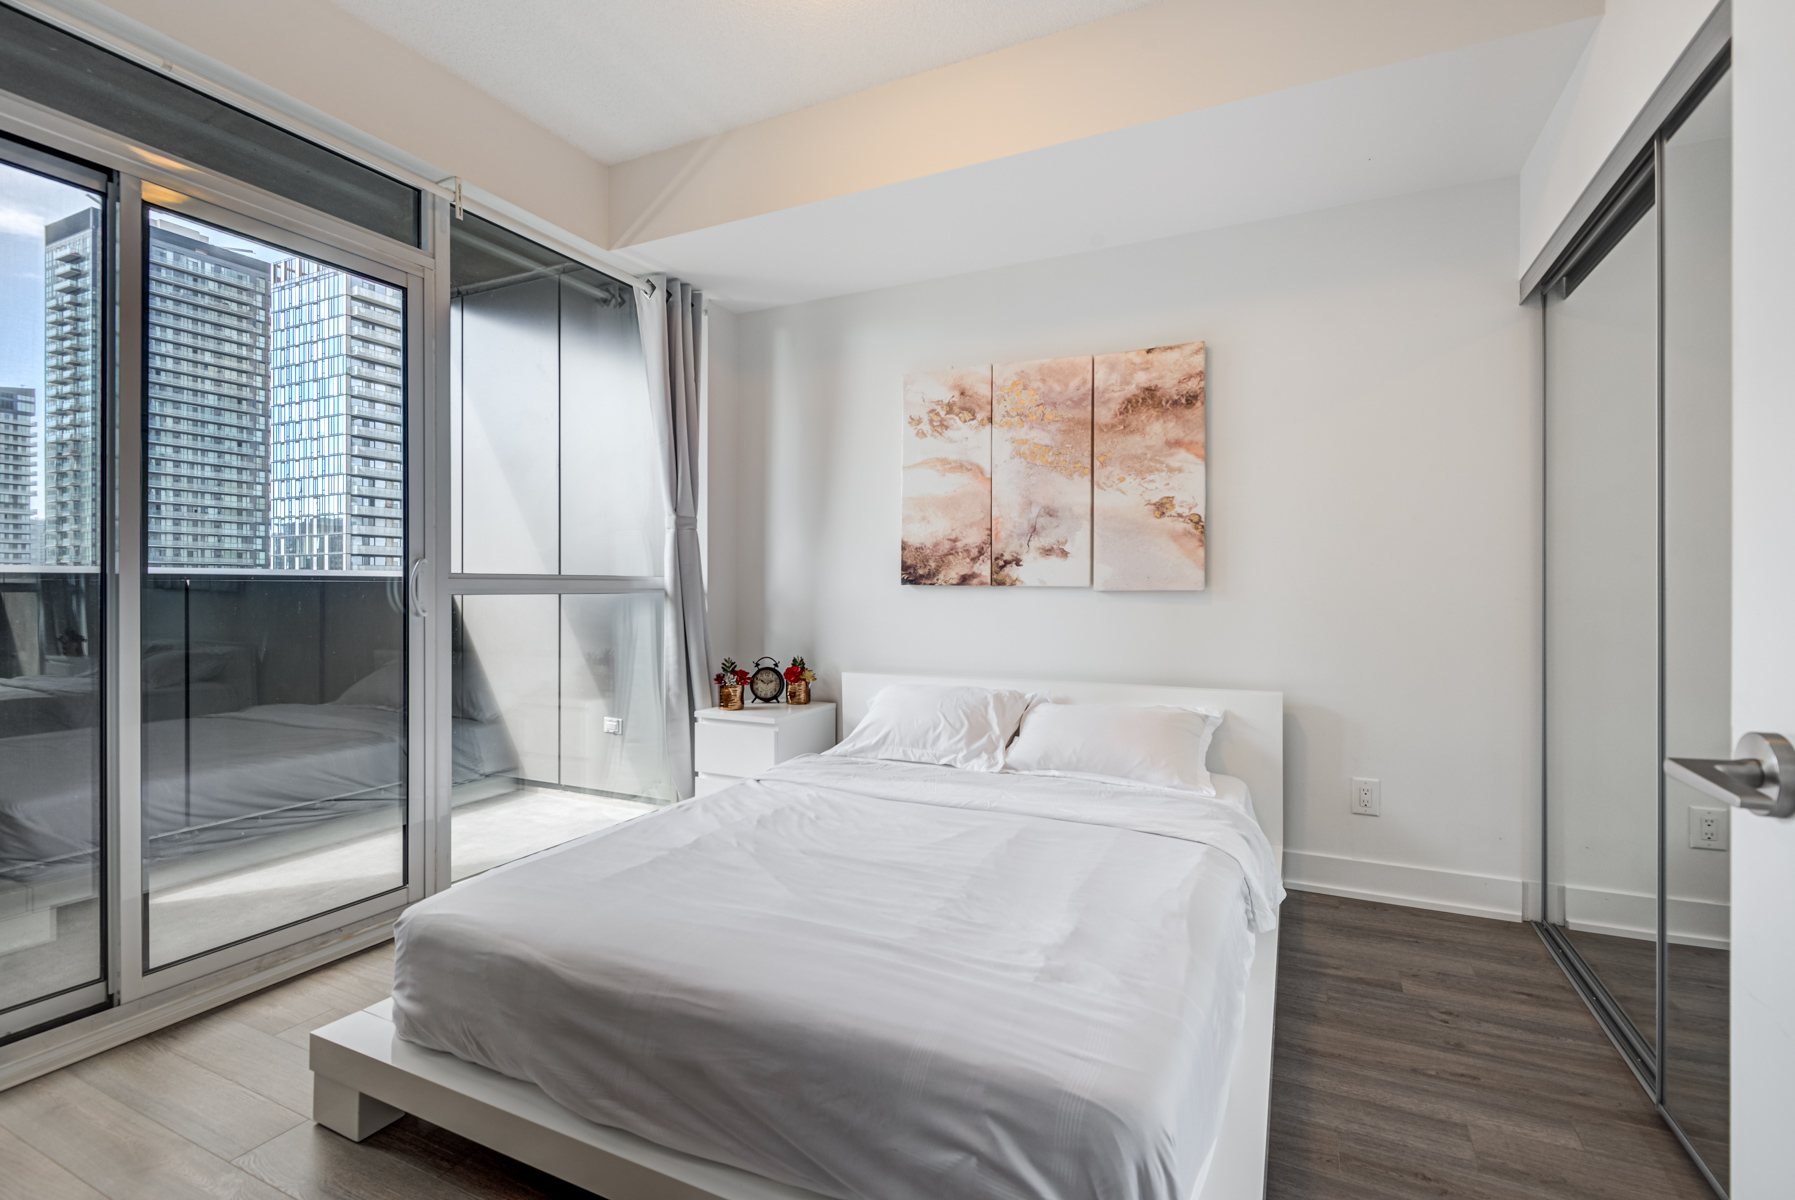 318 Richmond Unit 2607 large master bedroom with bed and balcony access.